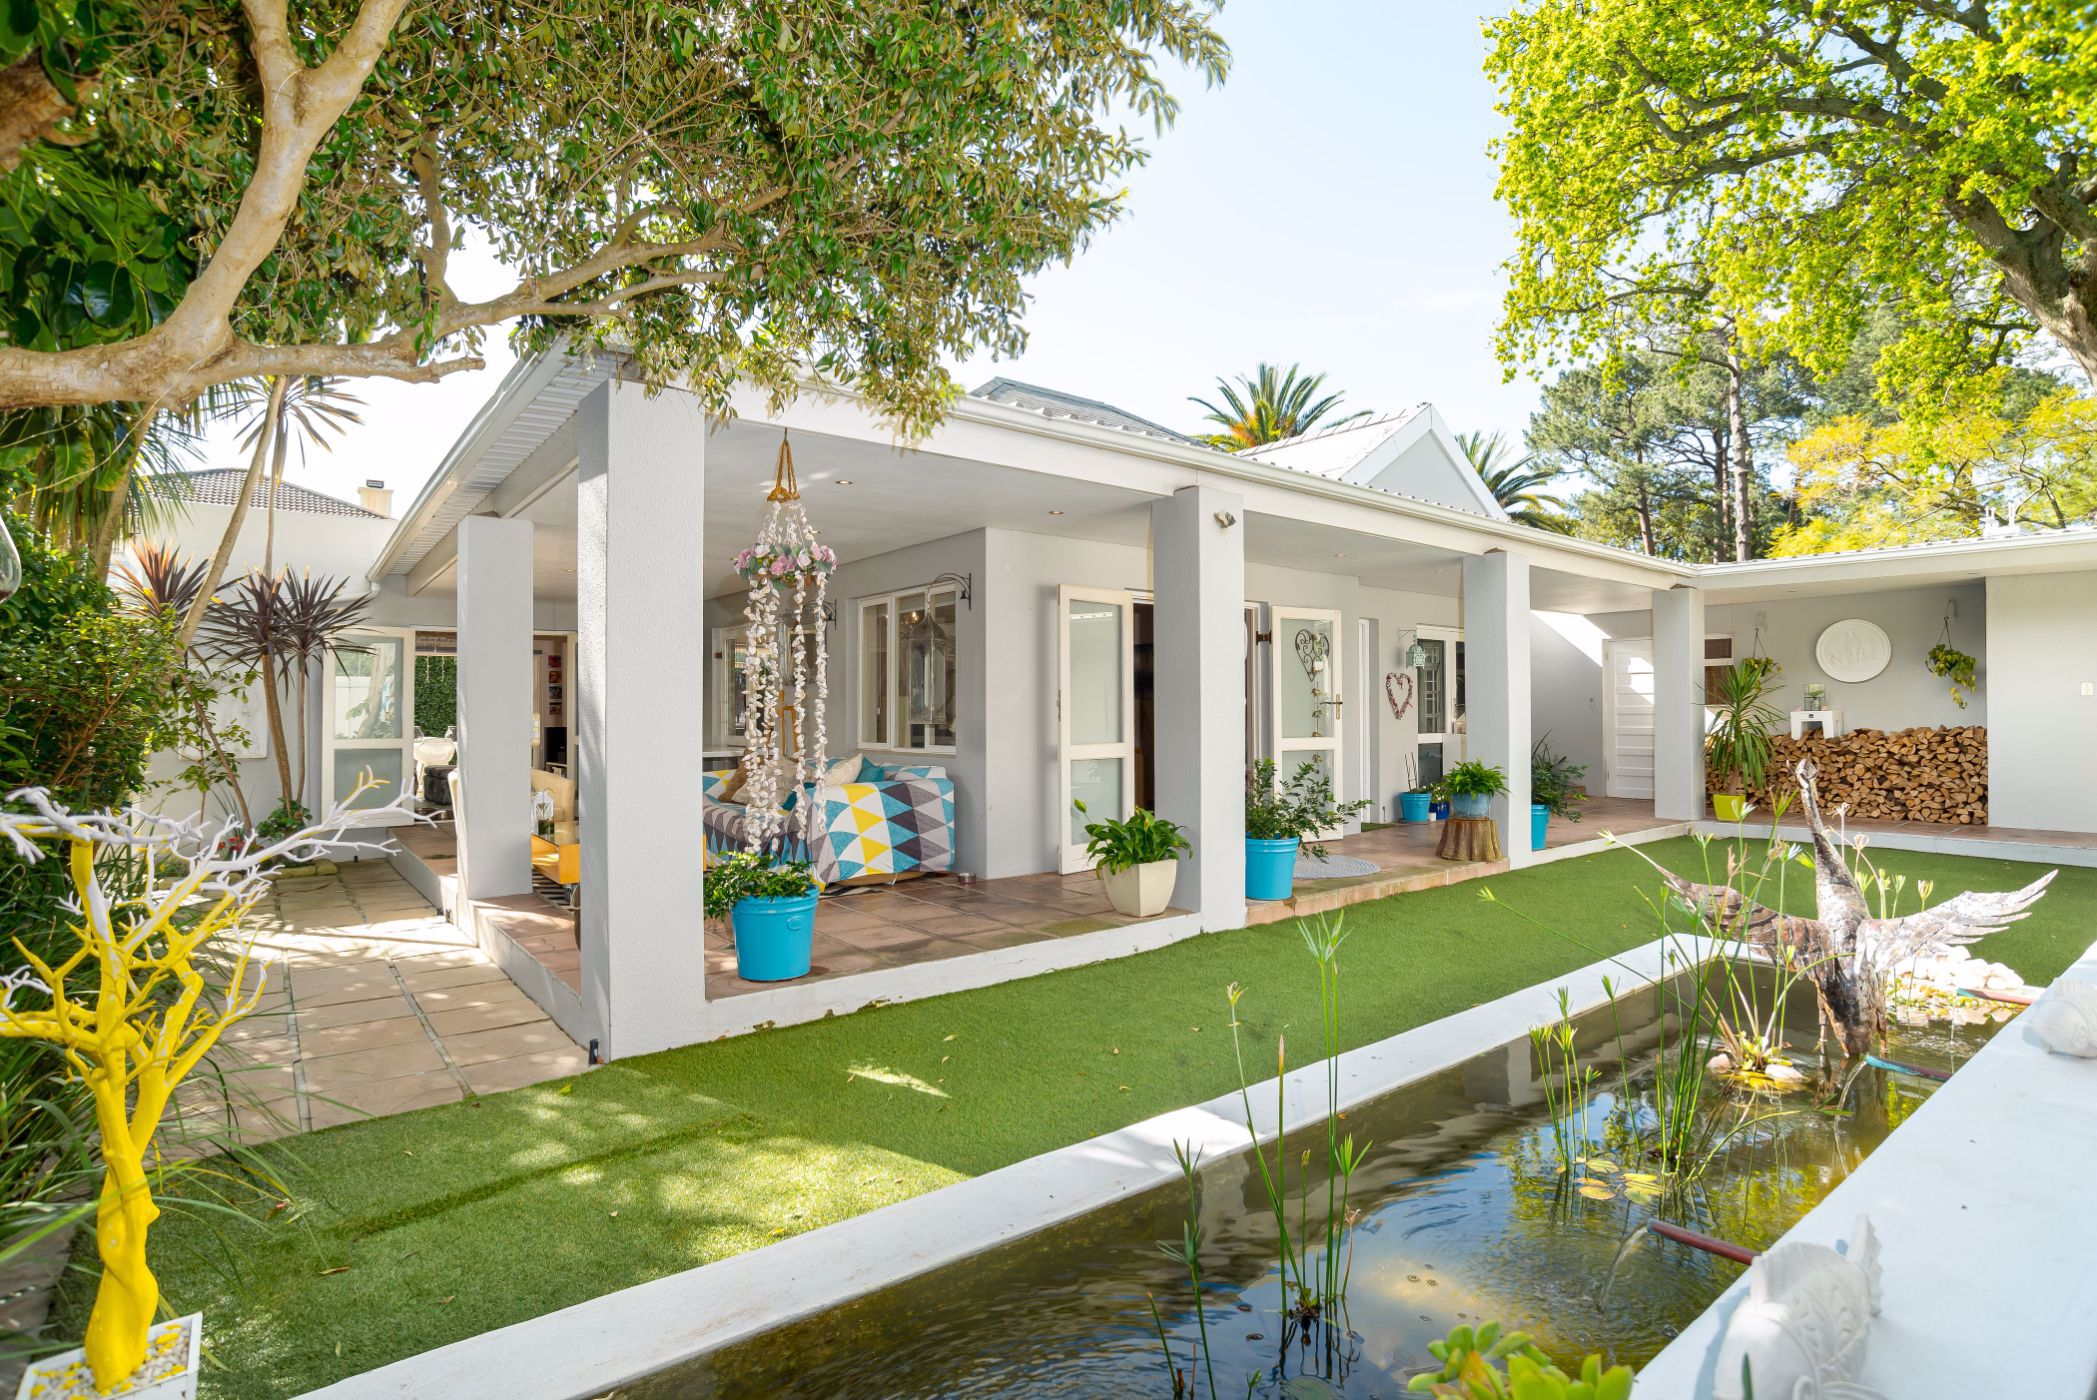 3 bedroom house for sale in Newlands (Cape Town)